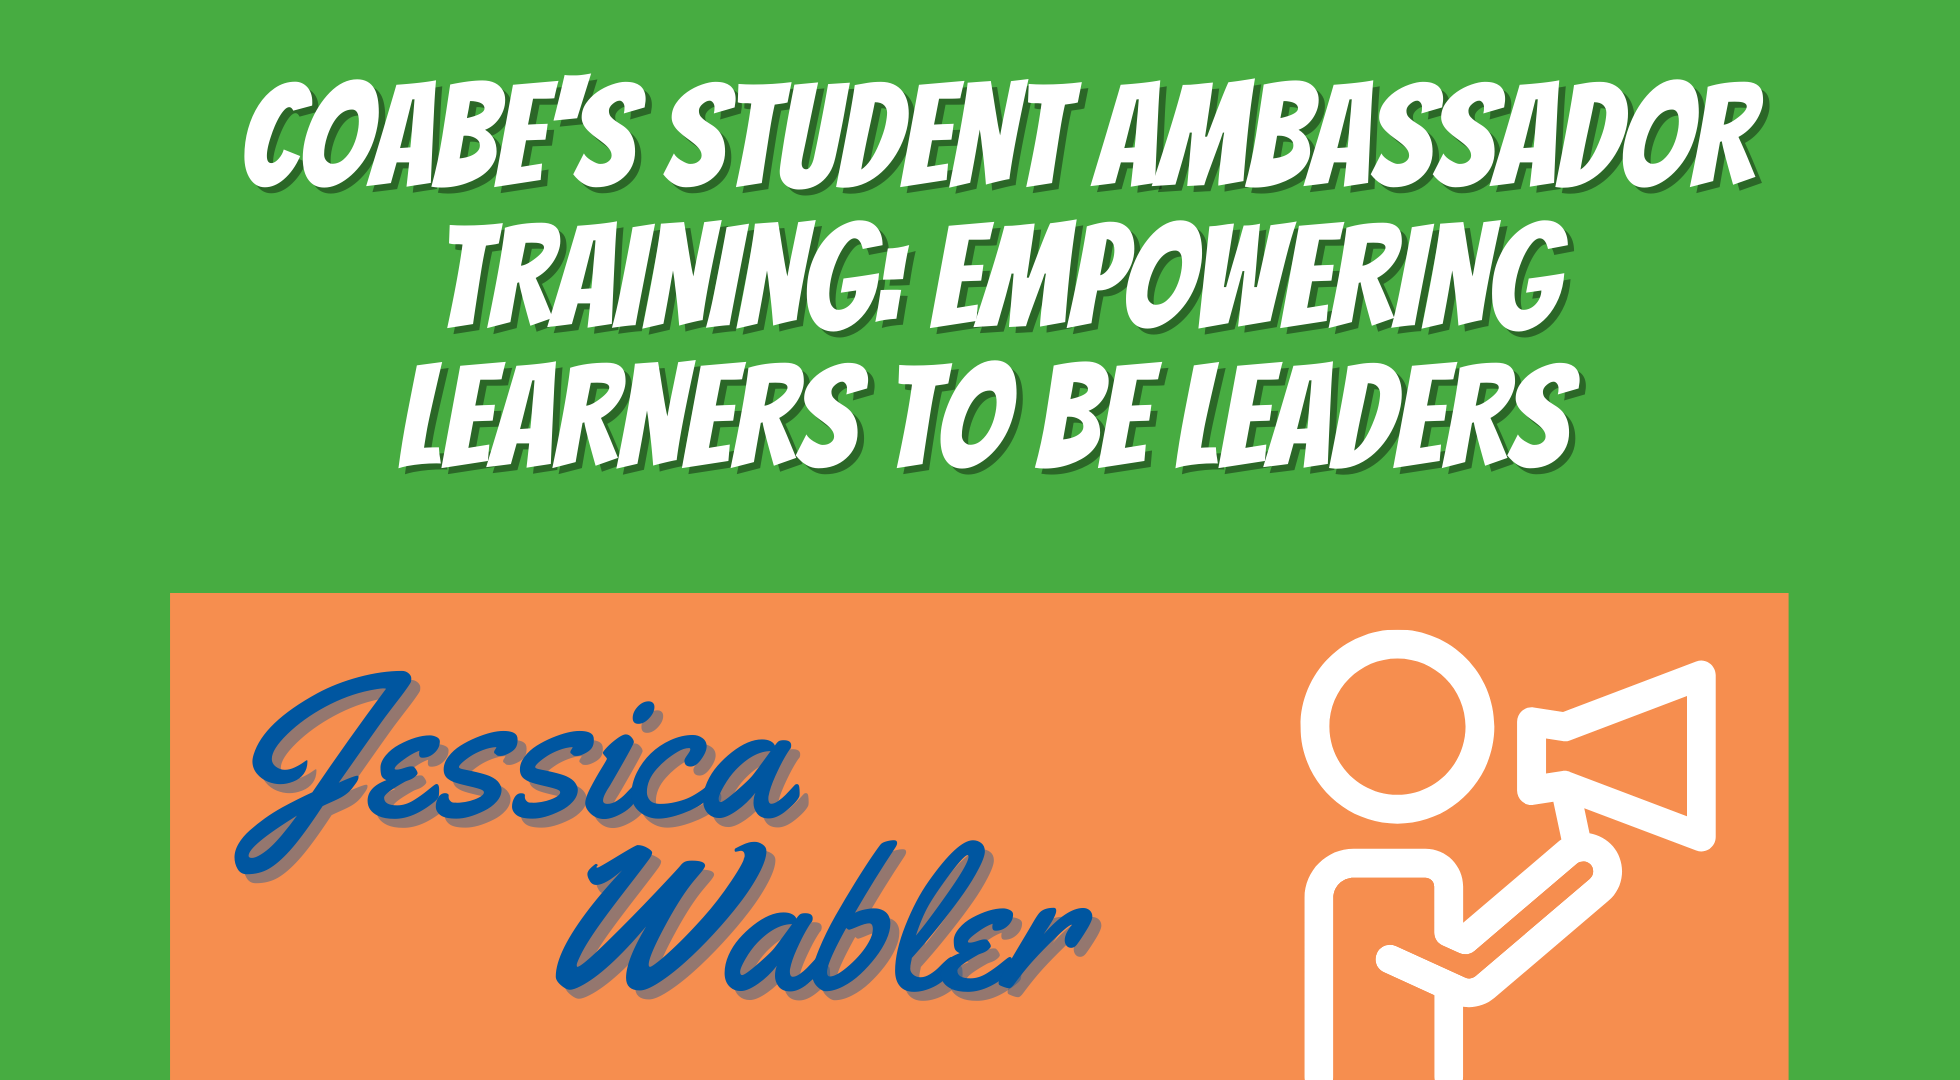 COABE's Student Ambassador Training: Empowering Learners to be Leaders